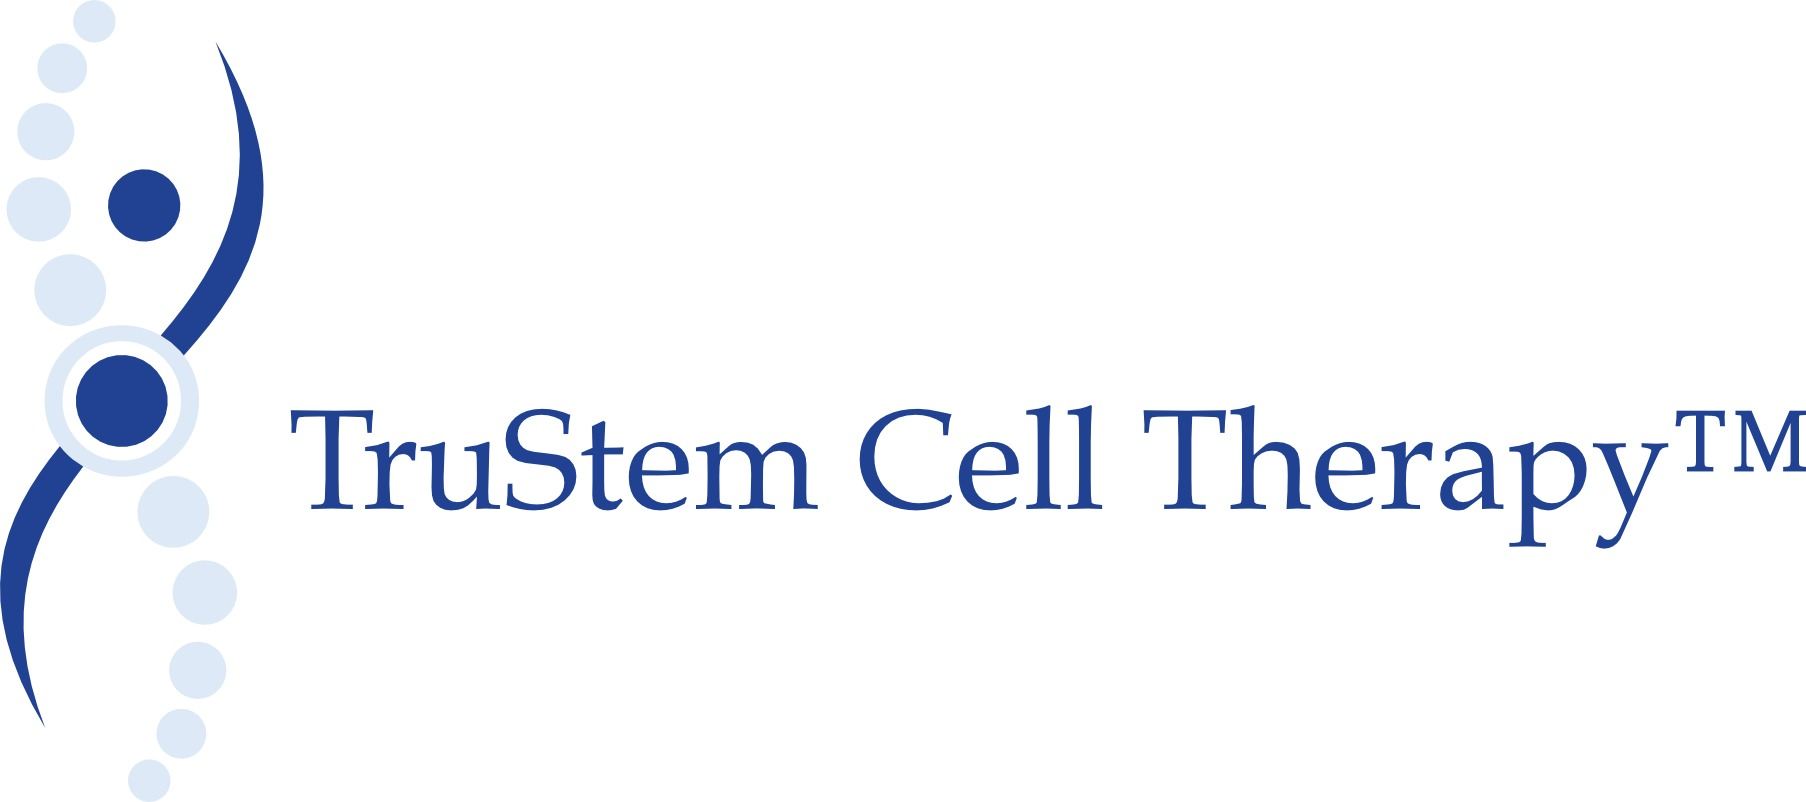 Top U.S. Stem Cell Therapy & Treatment Center